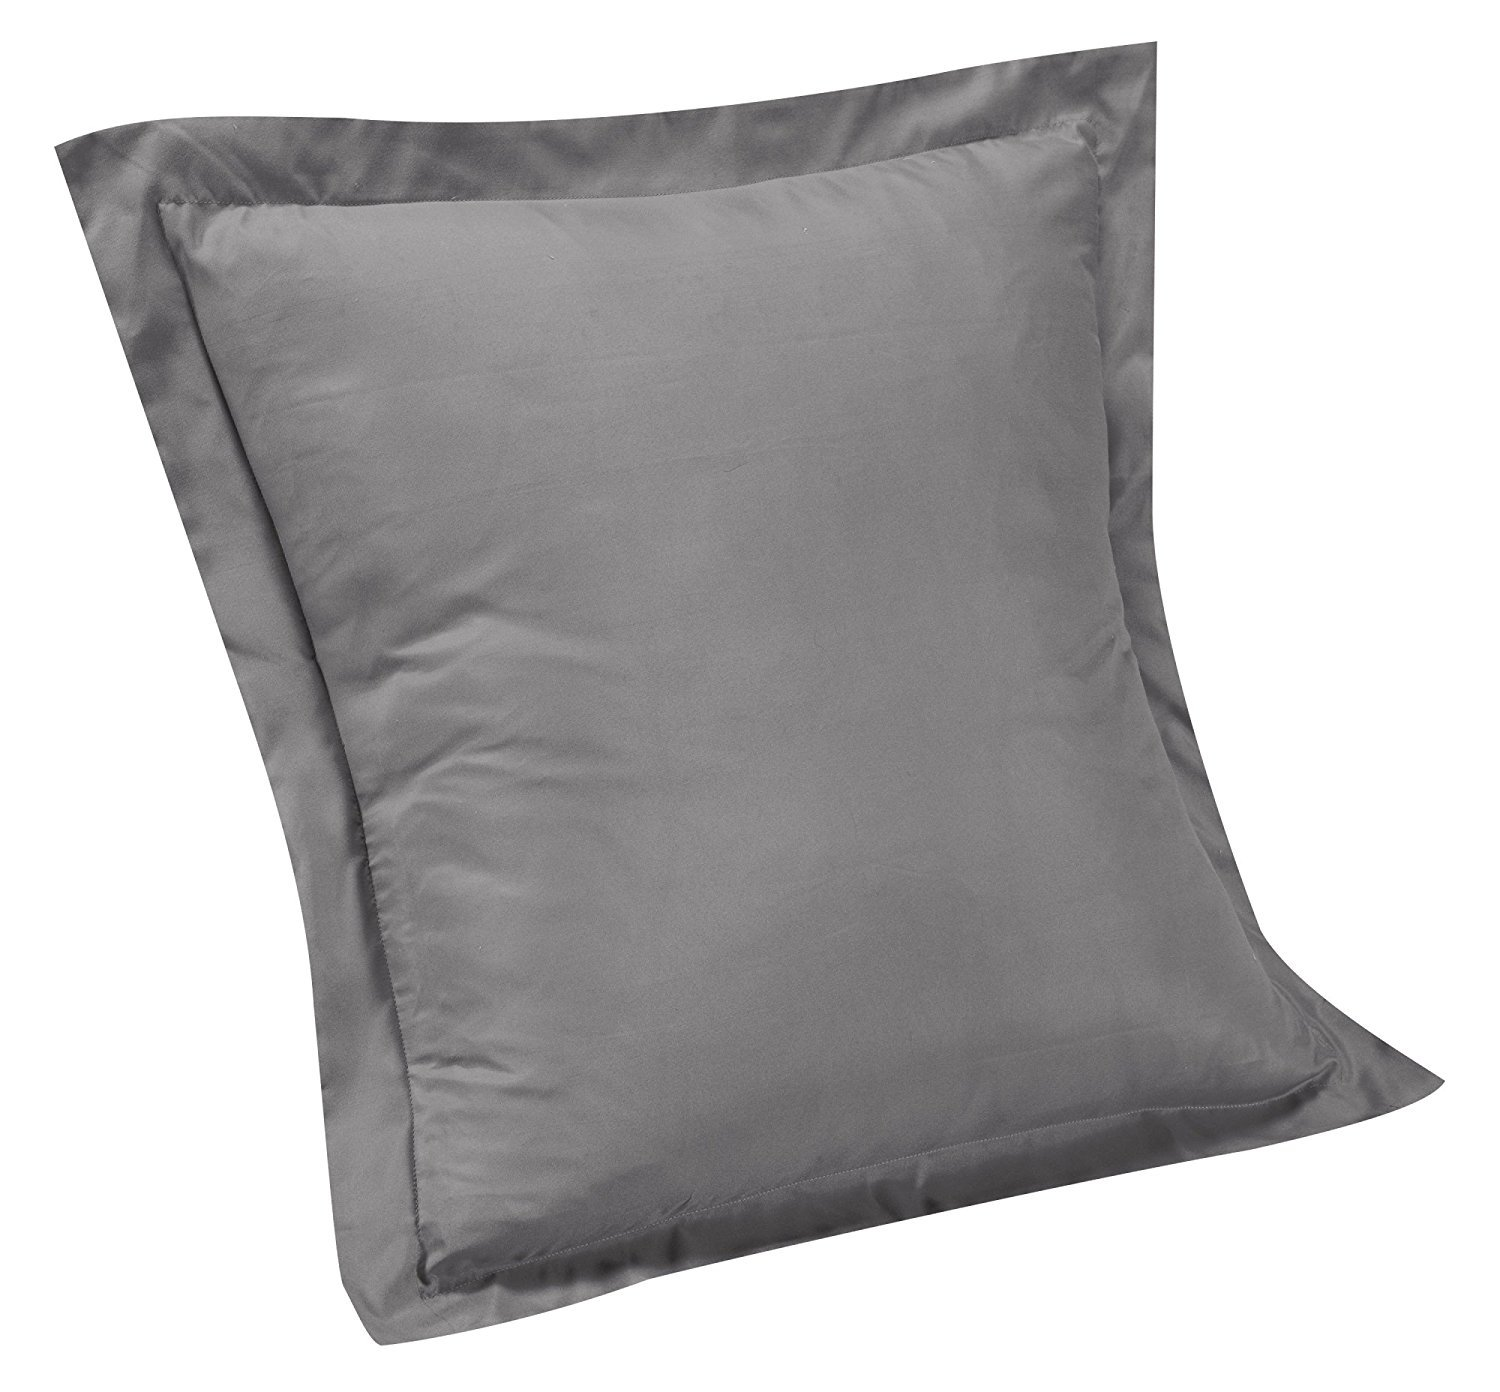 Thread Spread 100% Egyptian Cotton Pillow Shams with Envelope Closure 1000 Thread Count Sateen Weave 2 PCs by (Queen 20'' x 30'', Stone Grey) sham-20x30-grey